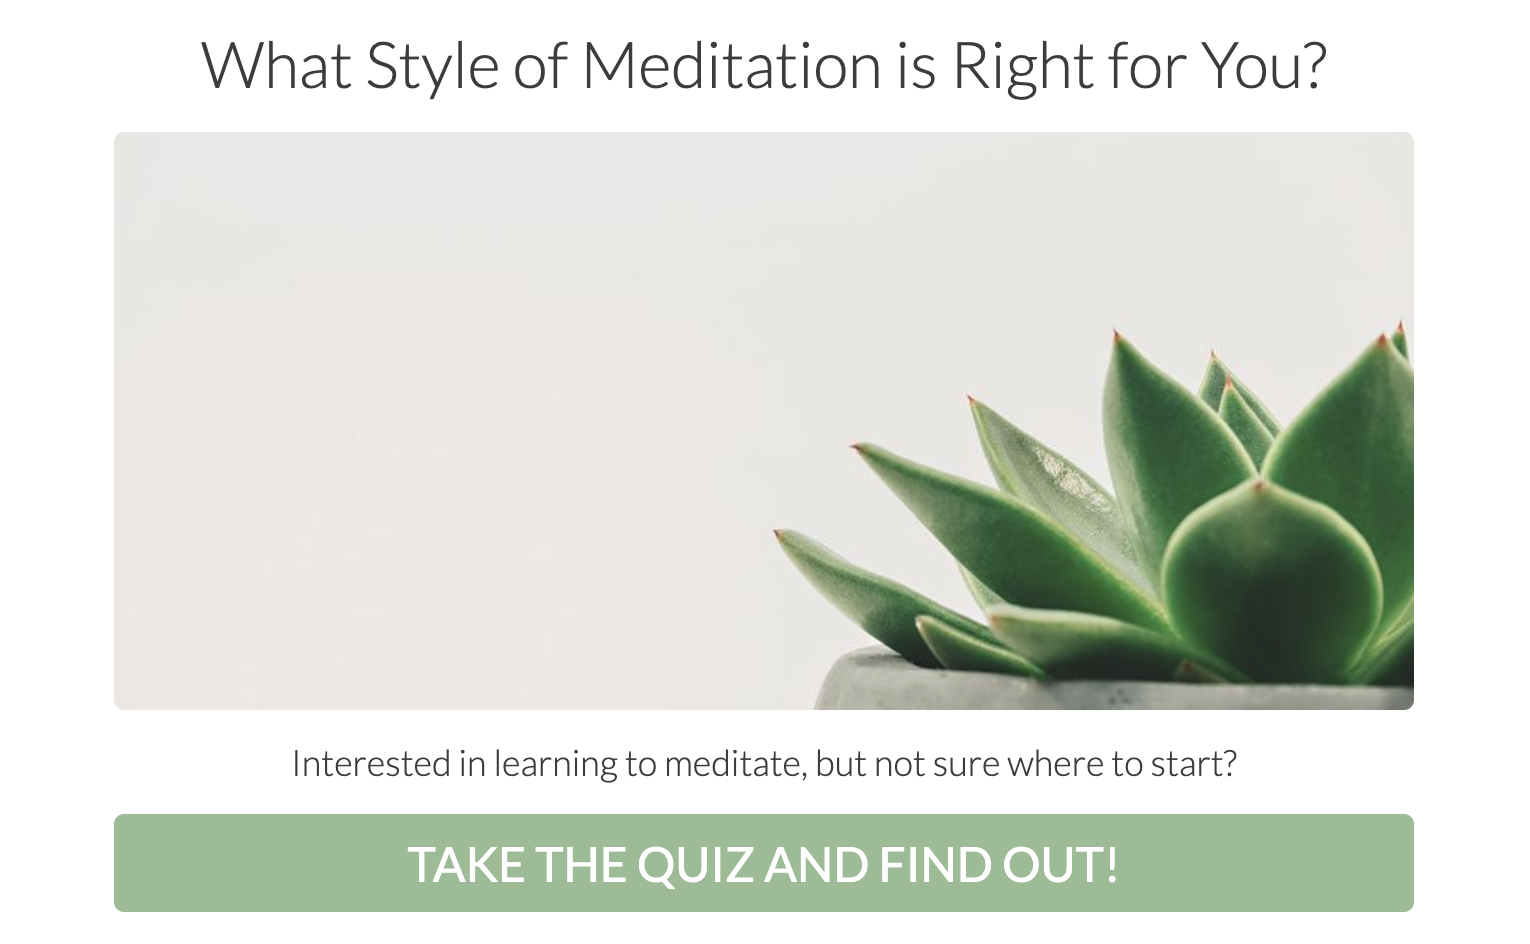 What style of meditation is right for you quiz cover with plant